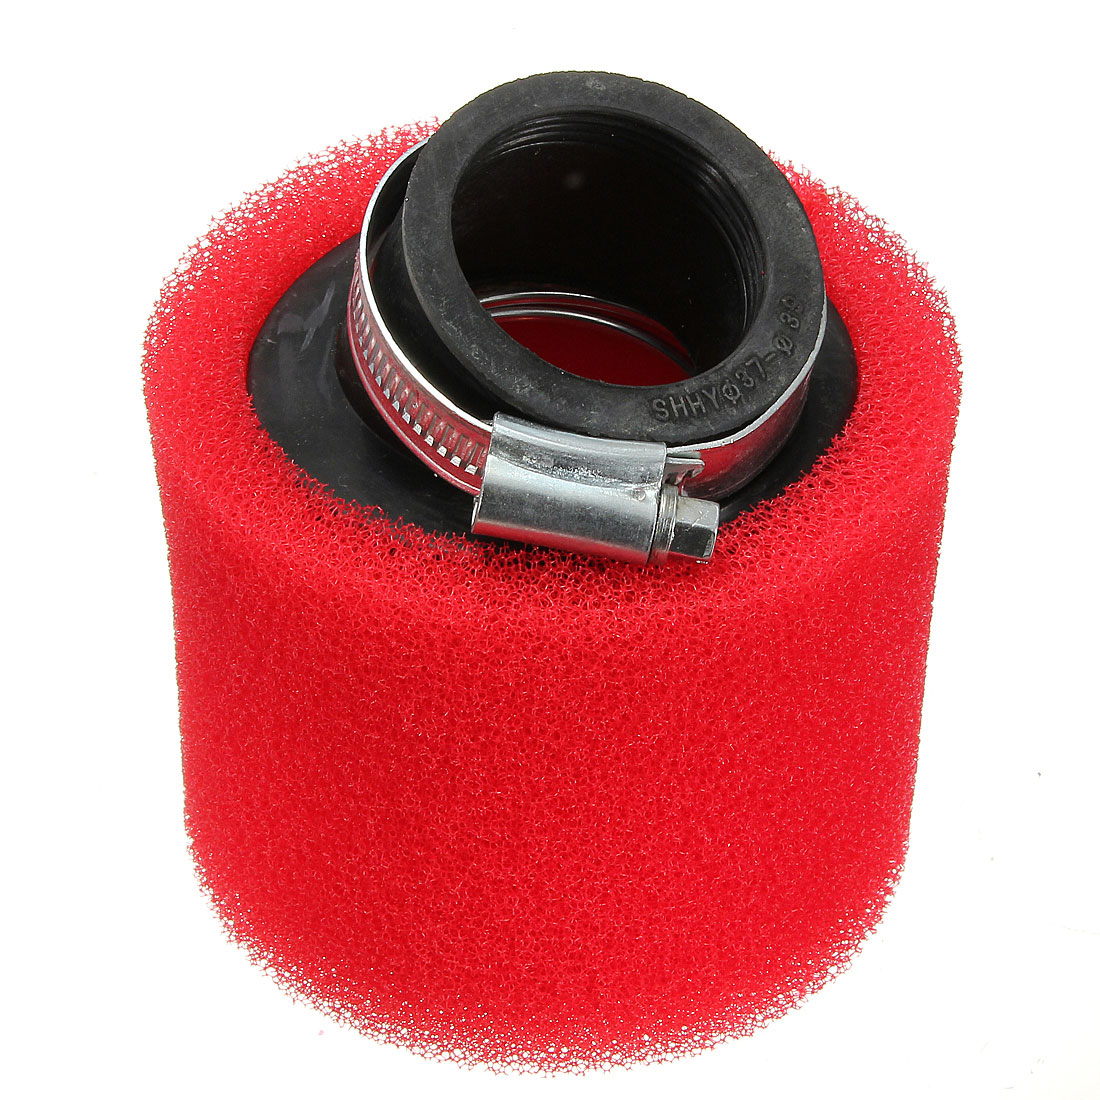 38mm ATV PIT DIRT BIKE 45 Degree ANGLED FOAM Air Filter Pod Cleaner 110cc 125cc RED CRF50 XR50 CRF image